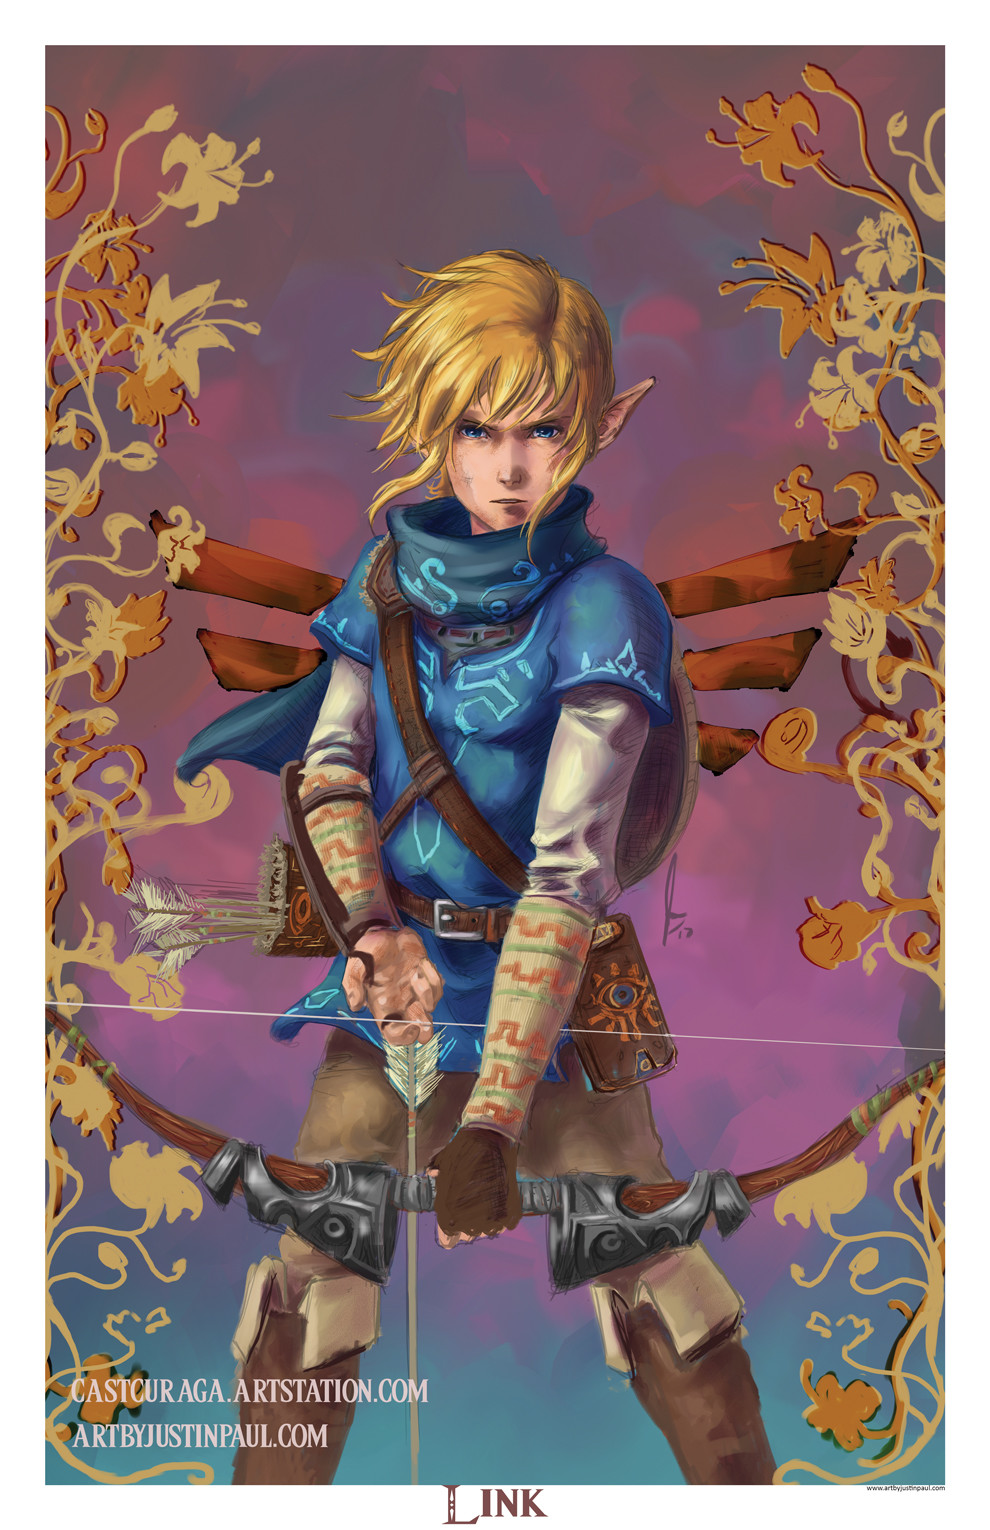 Link - The Legend of Zelda : BotW